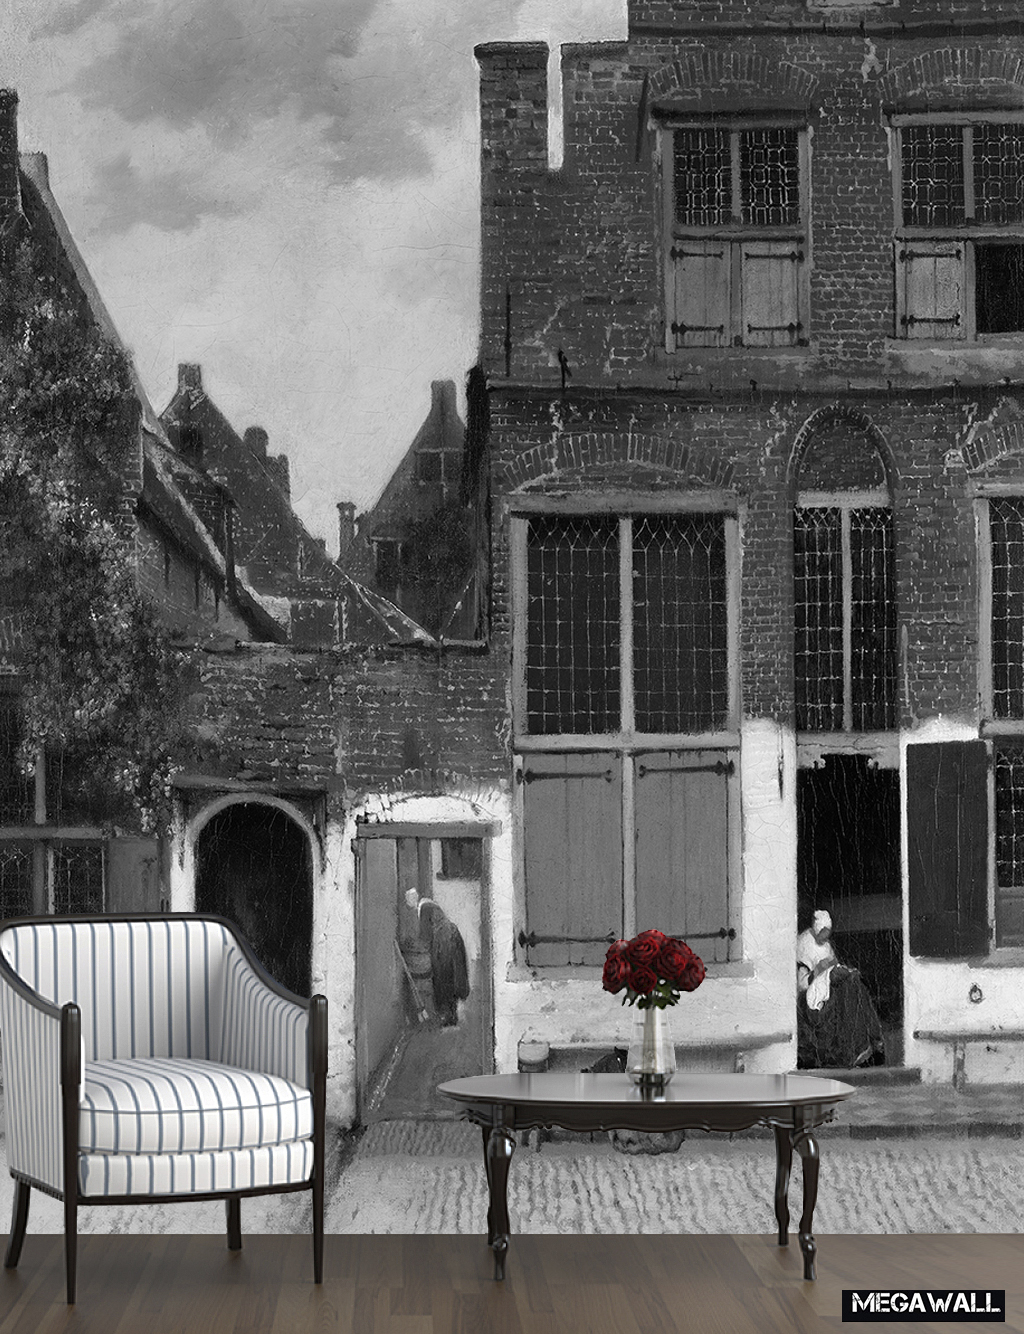 The Street by Johannes Vermeer - Wallpaper